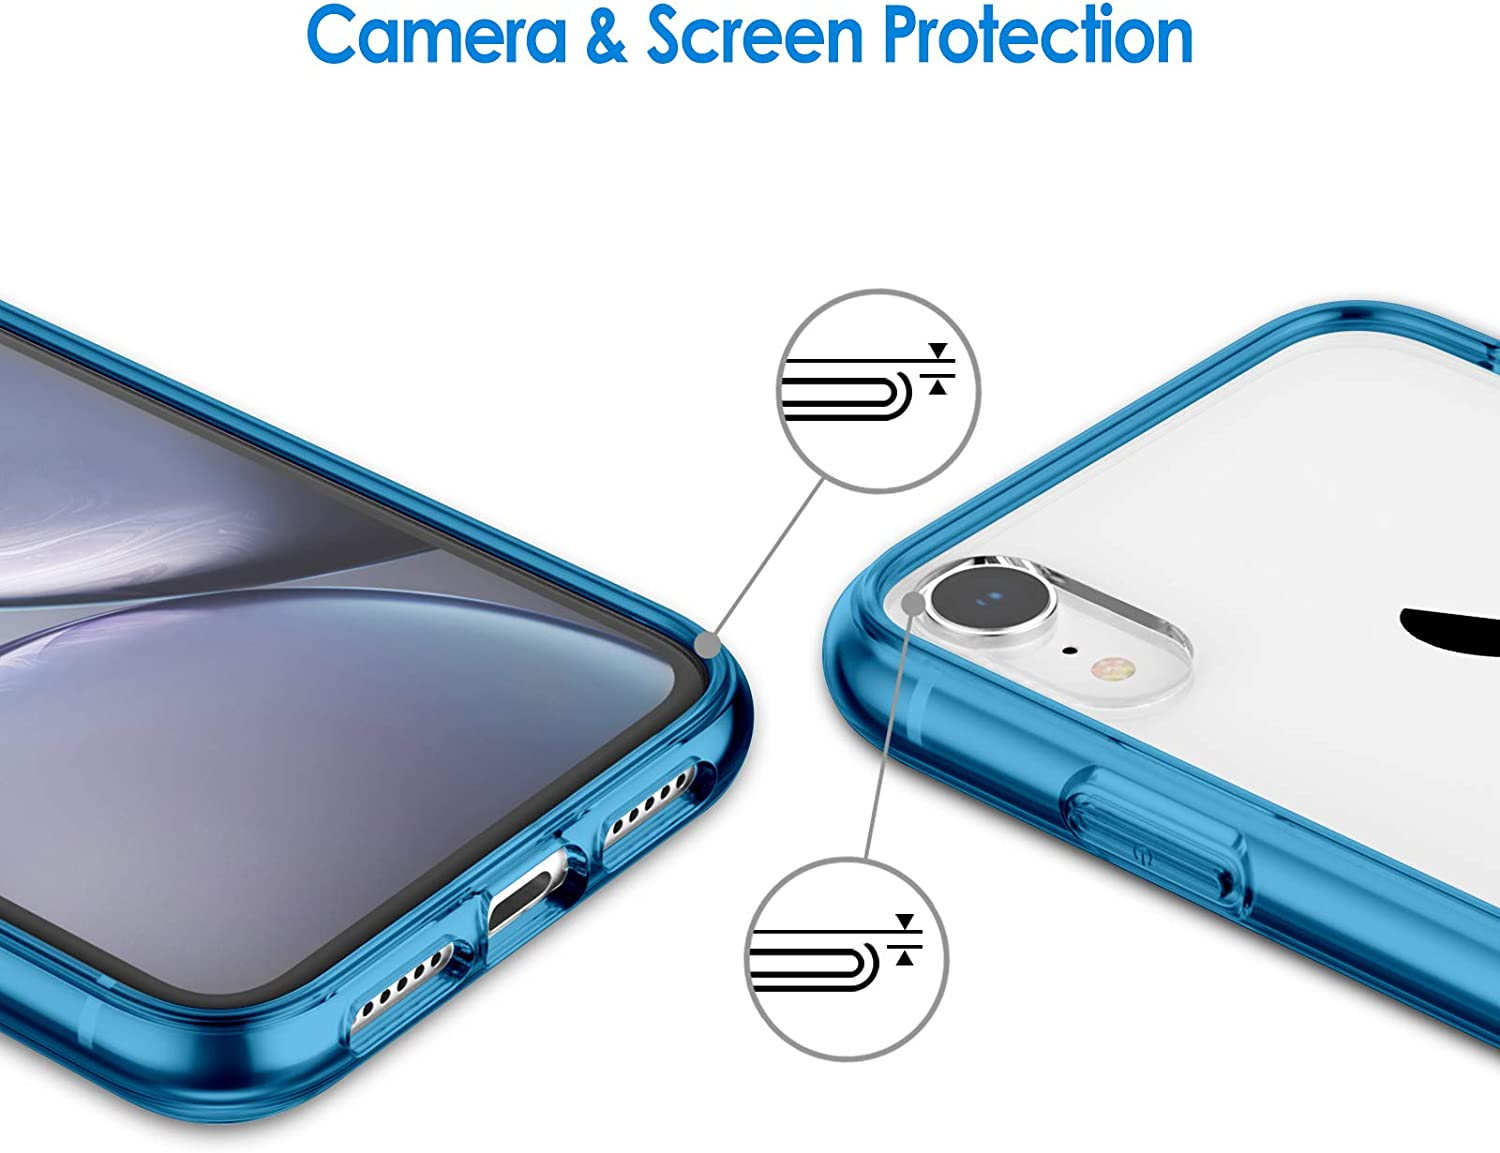 JETech Case for iPhone XR 6.1-Inch, Shock-Absorption Bumper Cover, Blue